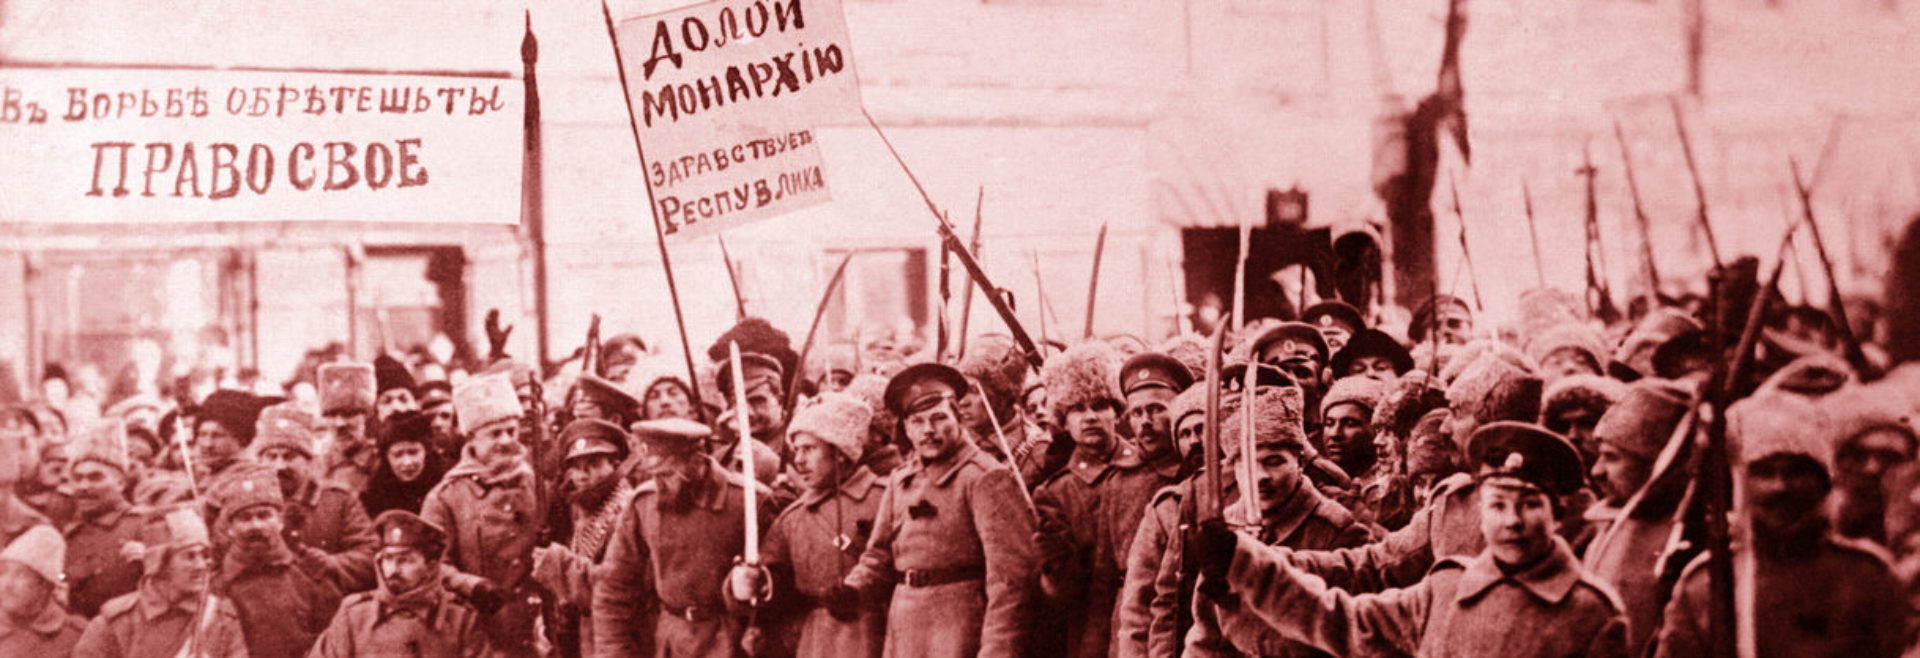 a history of the russian revolution of 1917 Was the russian revolution in 1905 or 1917 whenever anyone thinks of the russian revolution, they immediately bring to mind the events of 1917 which led to the removal of the tsar and the start of the soviet union.